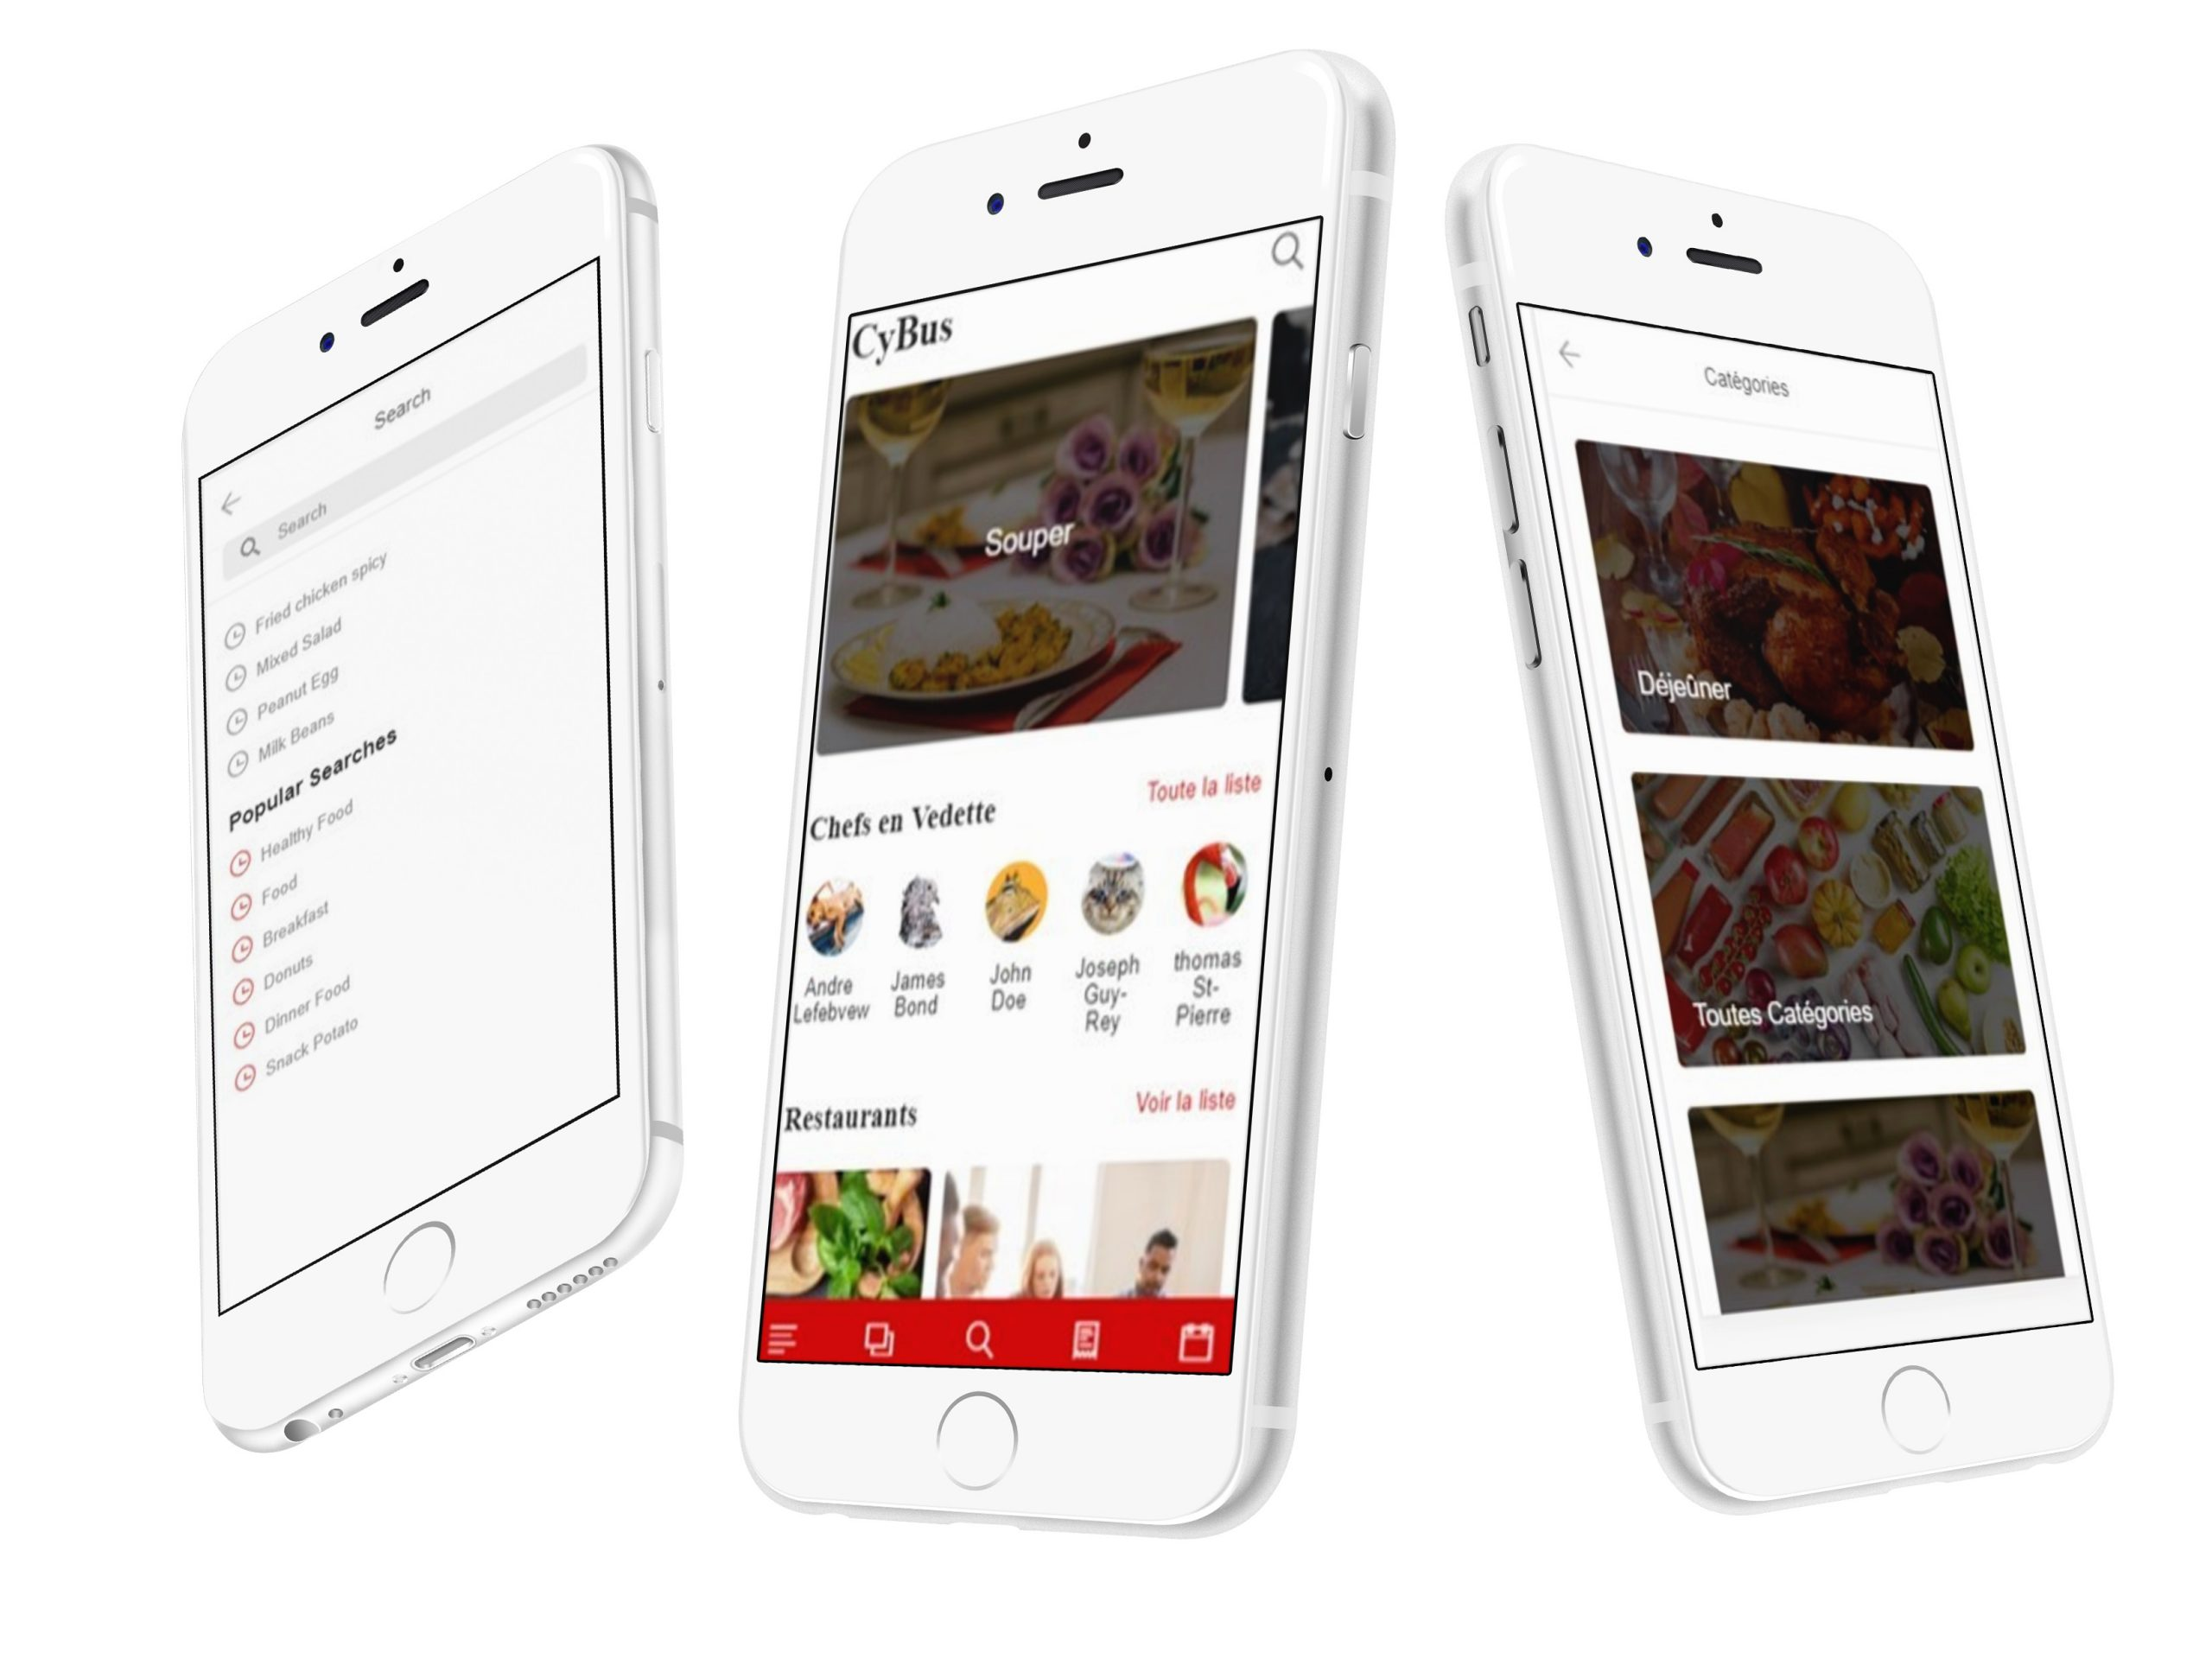 development of the Cybus mobile application